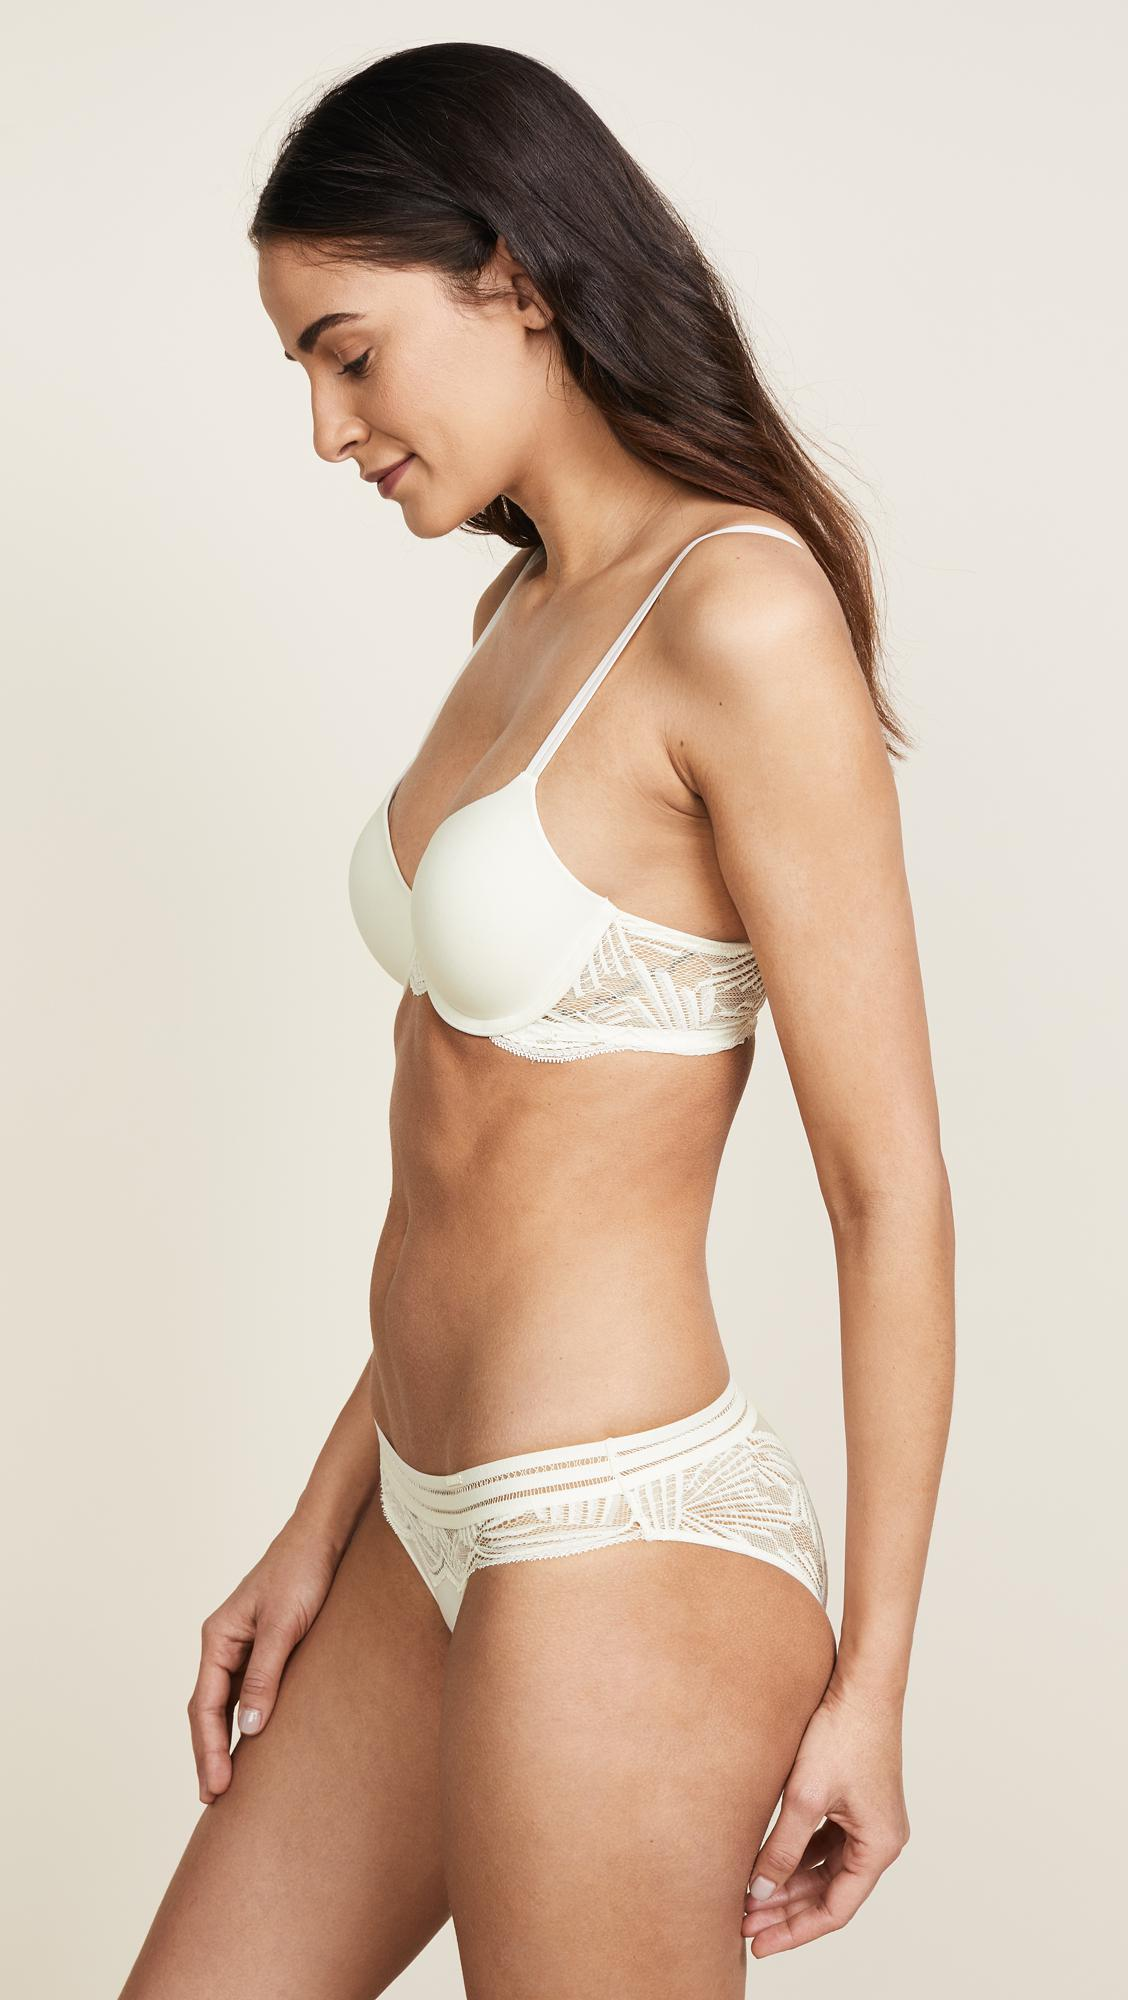 a1b6d74b5b2e92 Lyst - Calvin Klein Perfectly Fit Lightly Lined Full Coverage Bra in ...